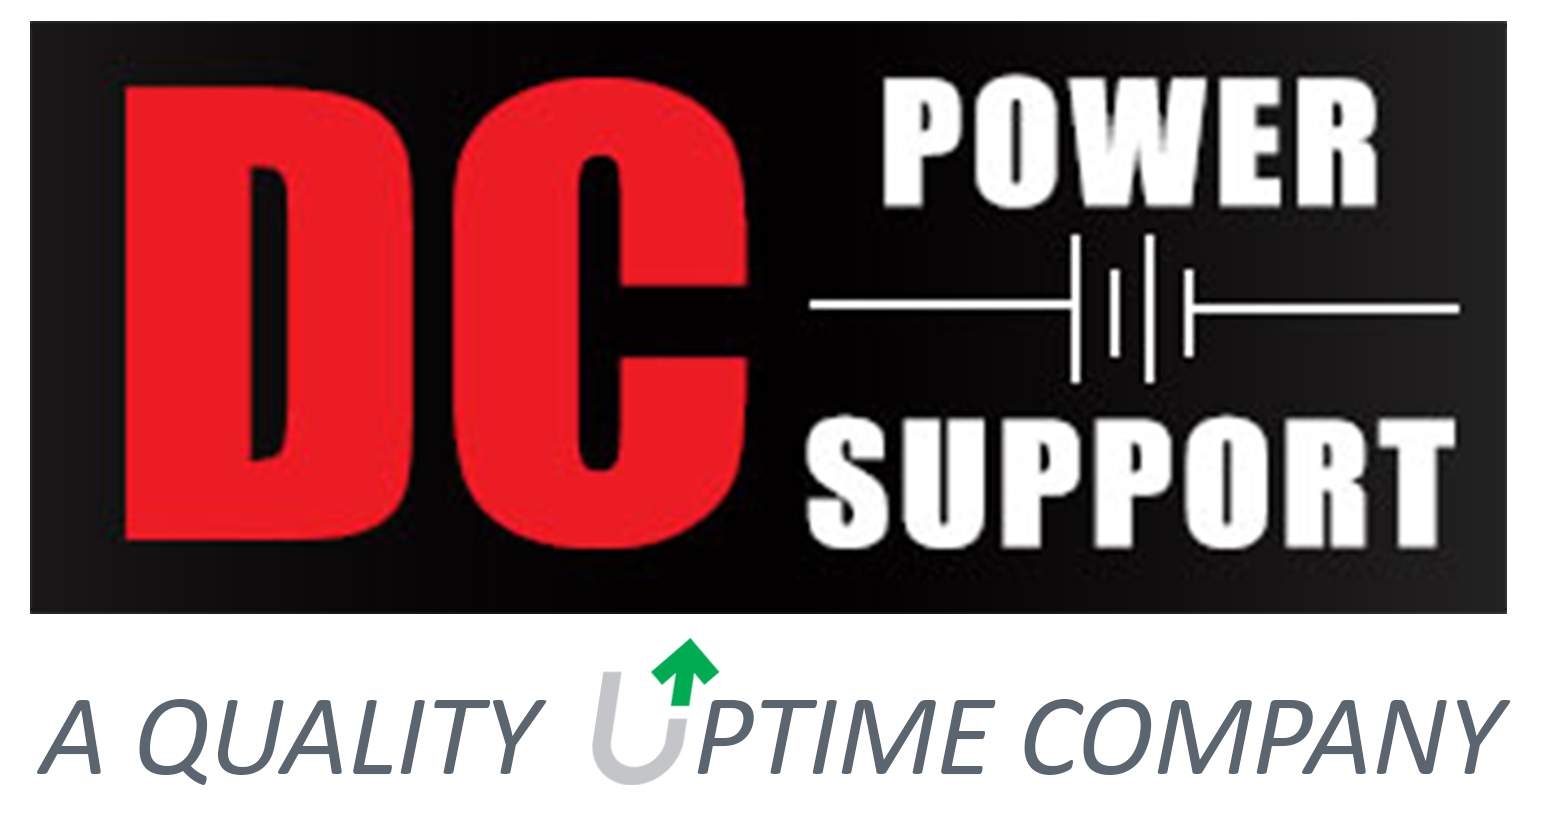 DC Power Quality Uptime